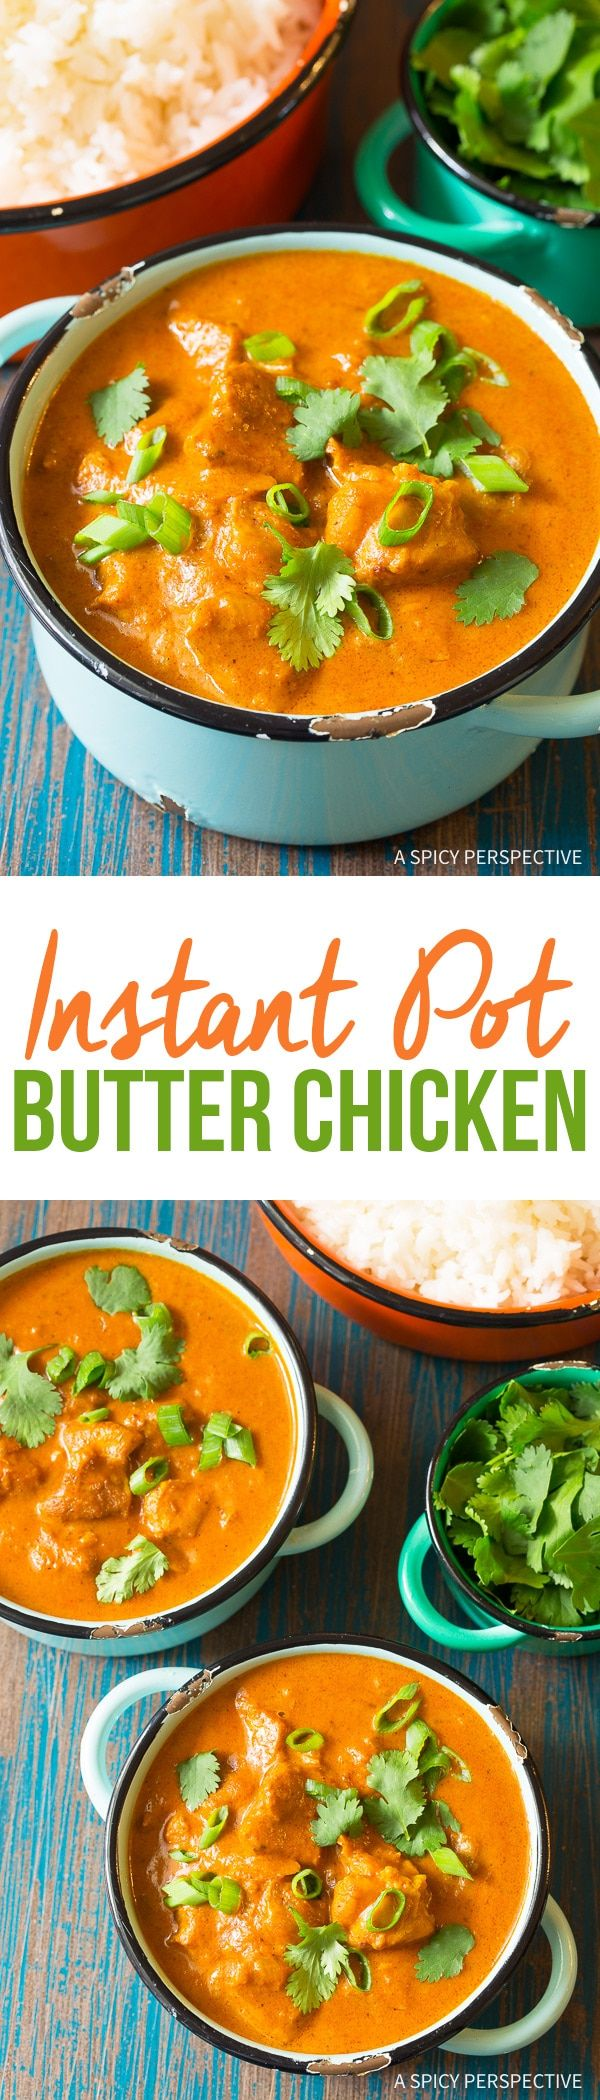 Perfect Instant Pot Butter Chicken Curry Recipe - An easy pressure cooker Indian recipe made in a hurry. Classic butter chicken is an all-time favorite and this recipe does not disappoint! via @spicyperspectiv